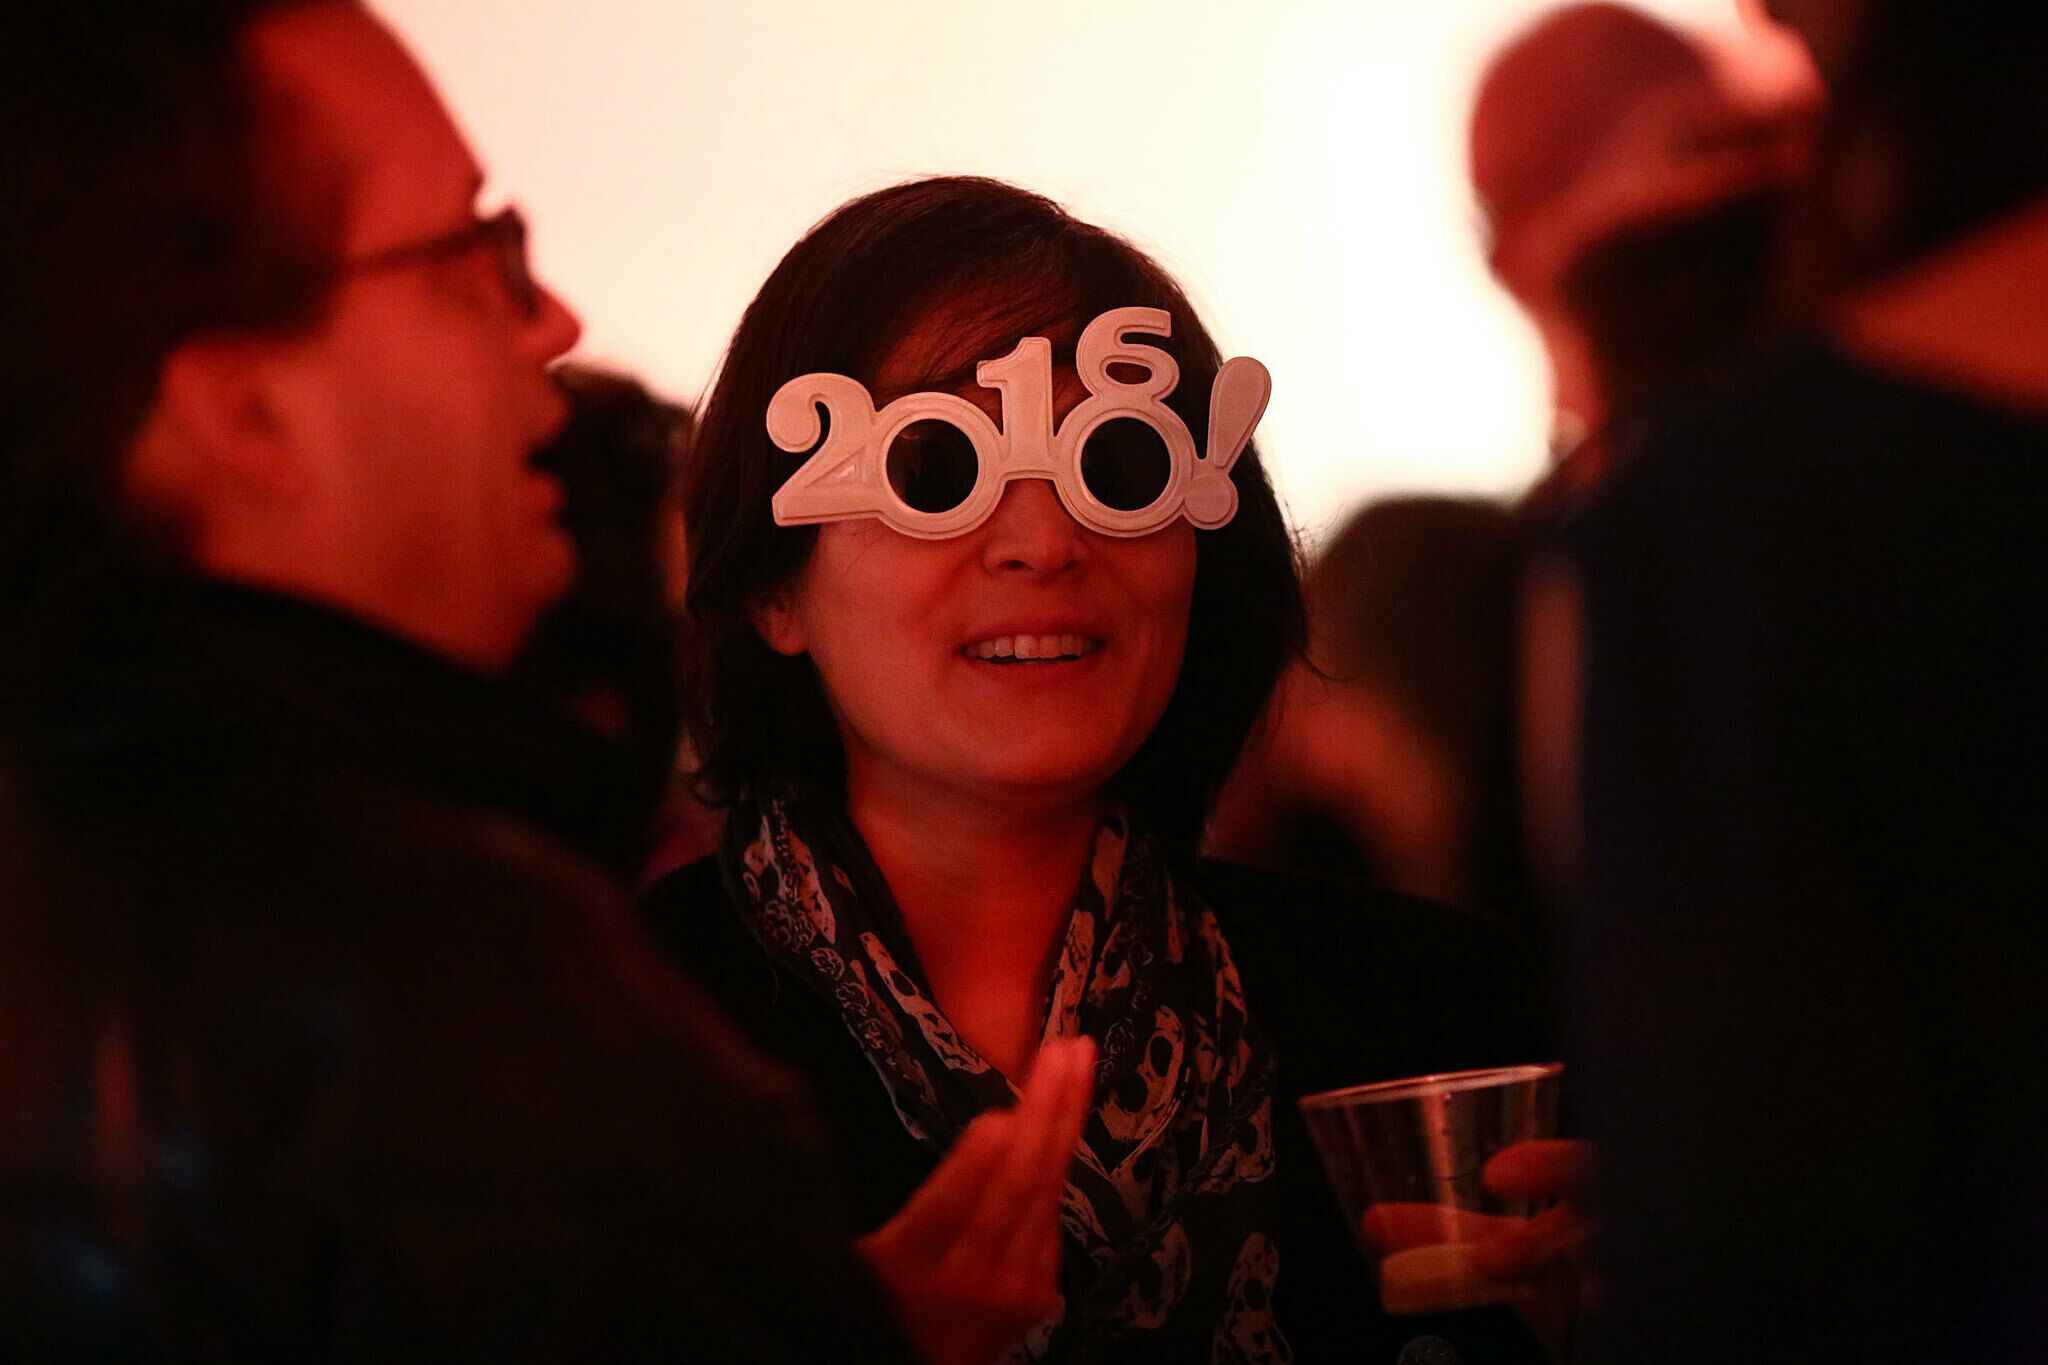 Woman with 2016 glasses.